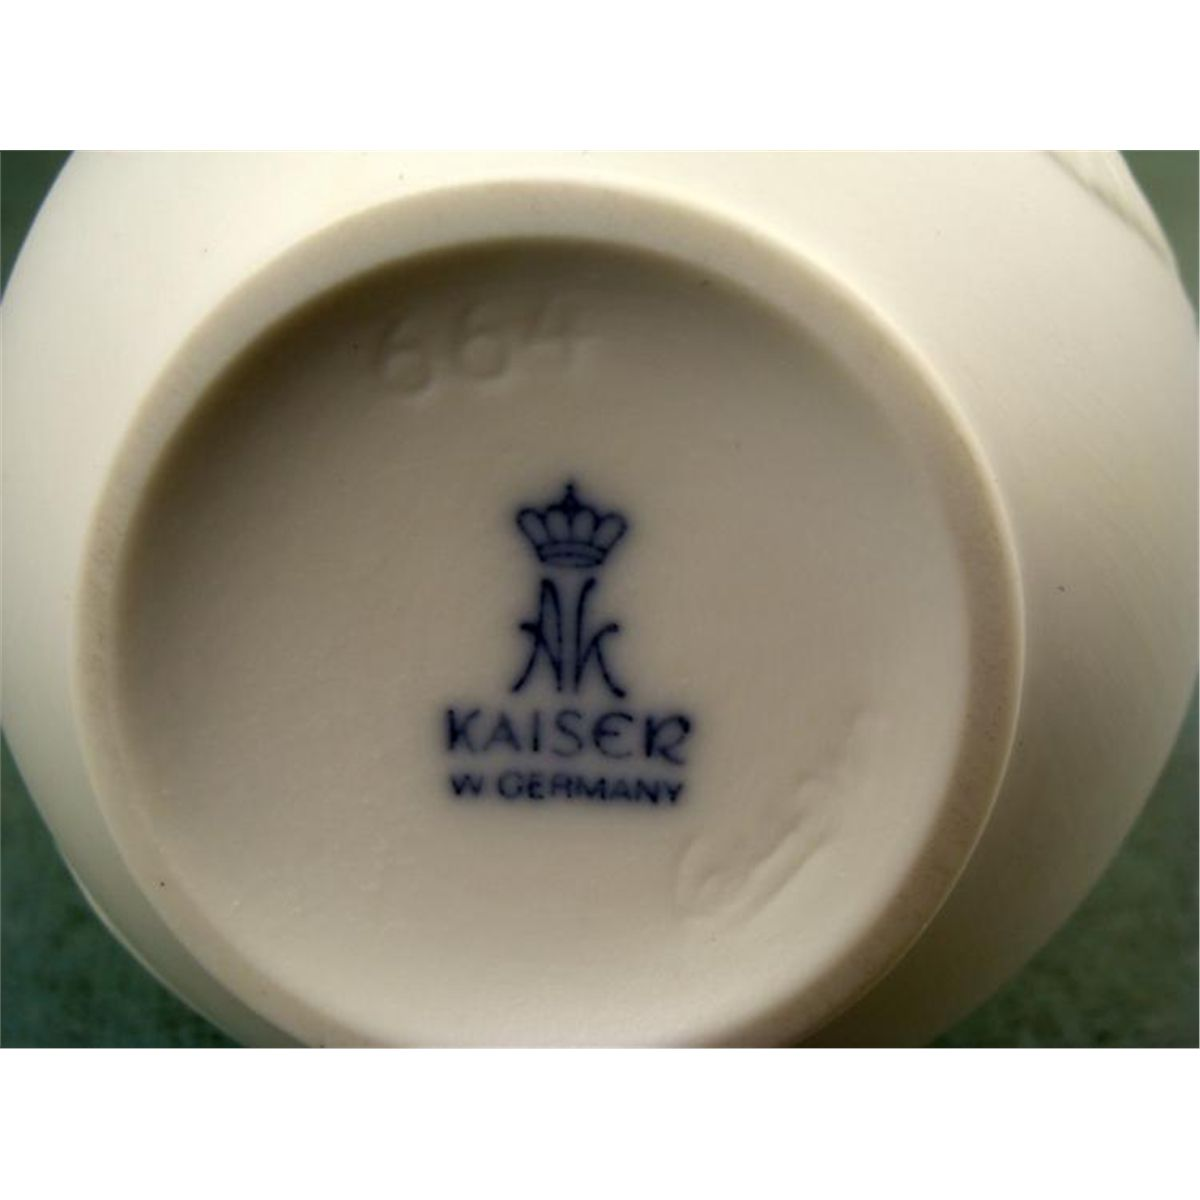 Kaiser W  German Bisque Vintage Flower Vase 664